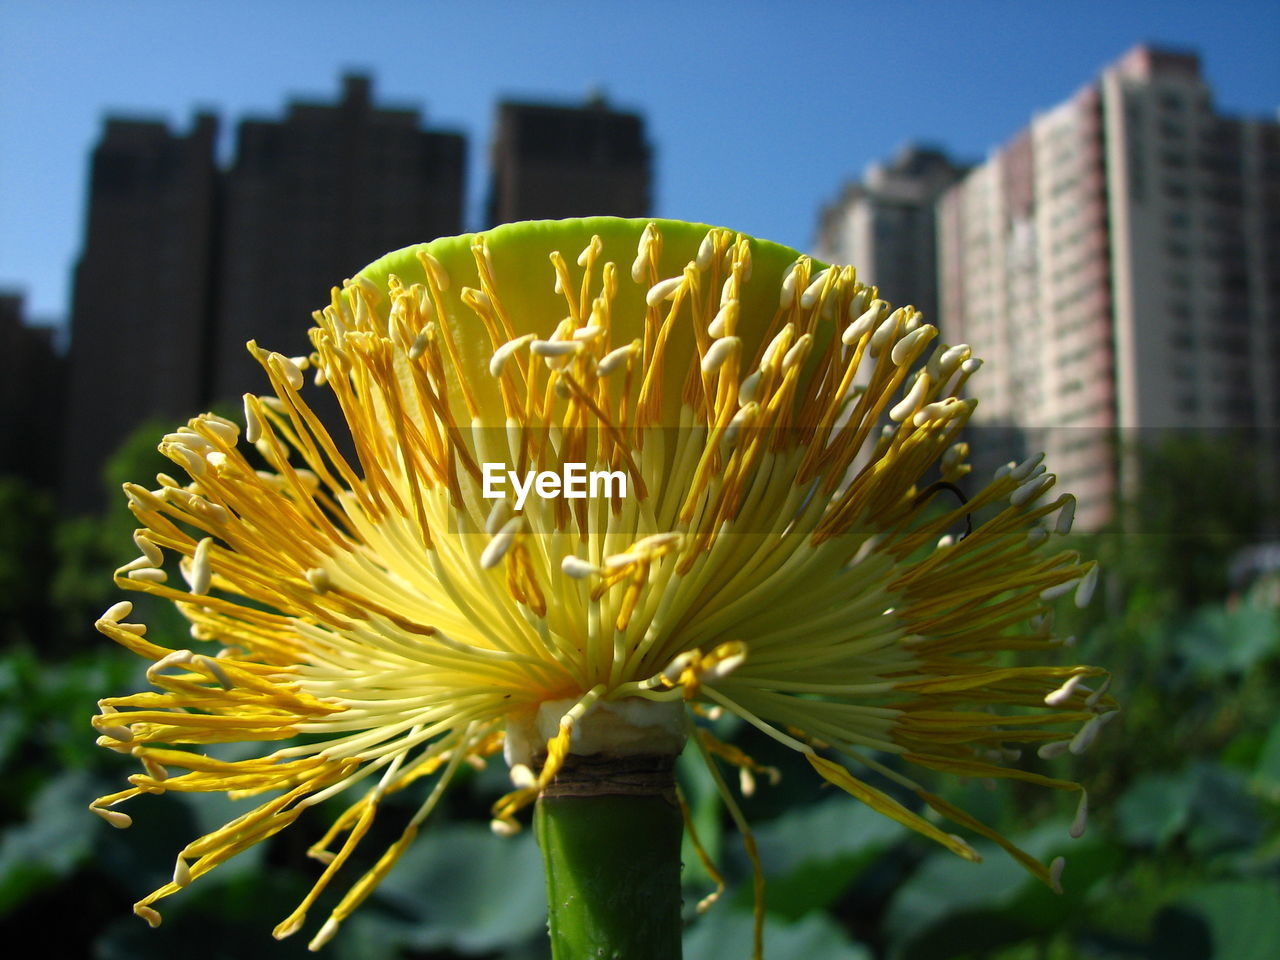 flower, fragility, growth, nature, freshness, plant, petal, focus on foreground, beauty in nature, no people, yellow, outdoors, close-up, flower head, blooming, day, architecture